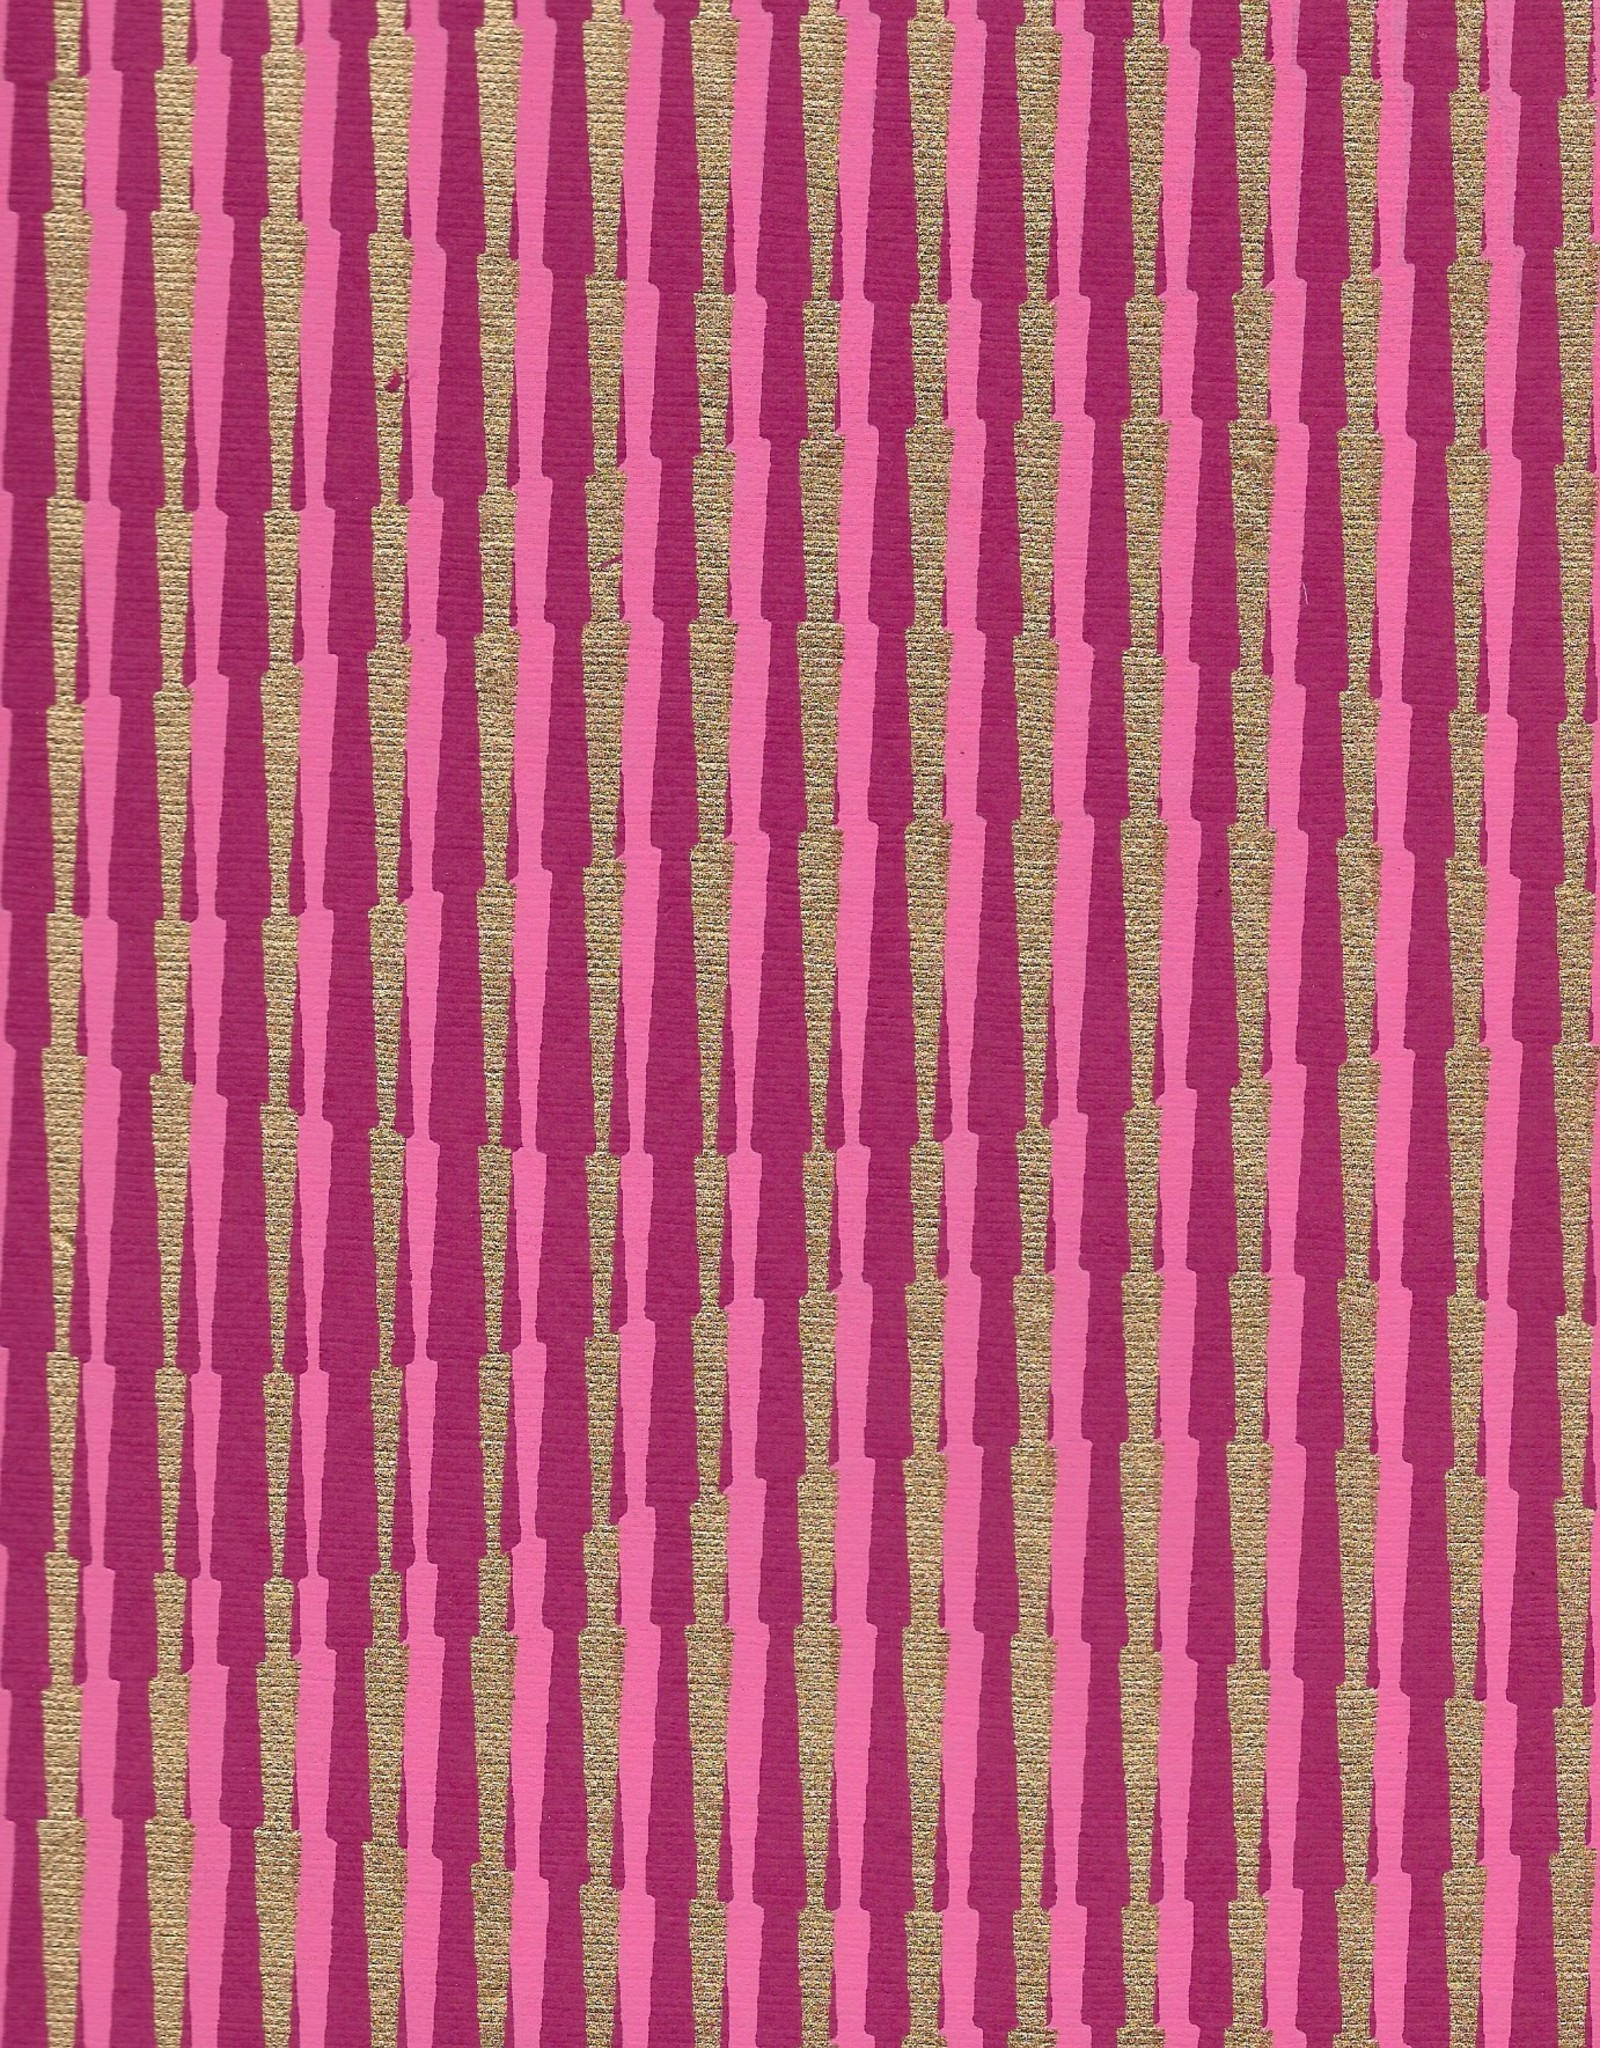 "Optical Illusion, Hillside, Magenta, Pink with Gold on Purple, 22"" x 30"""